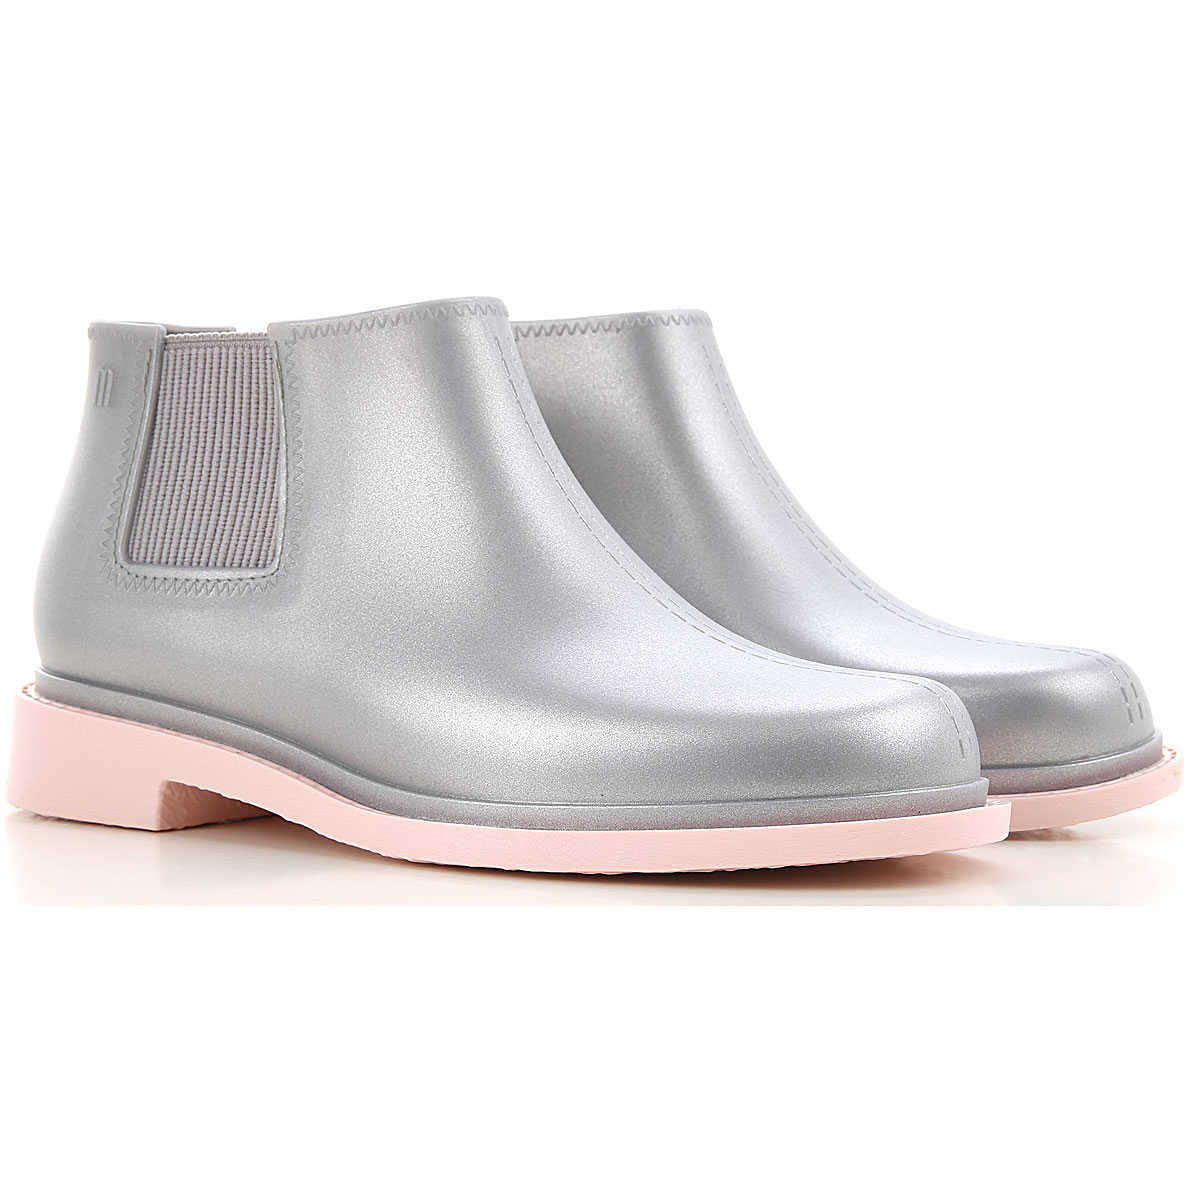 Melissa Boots for Women Booties Canada - GOOFASH - Womens BOOTS